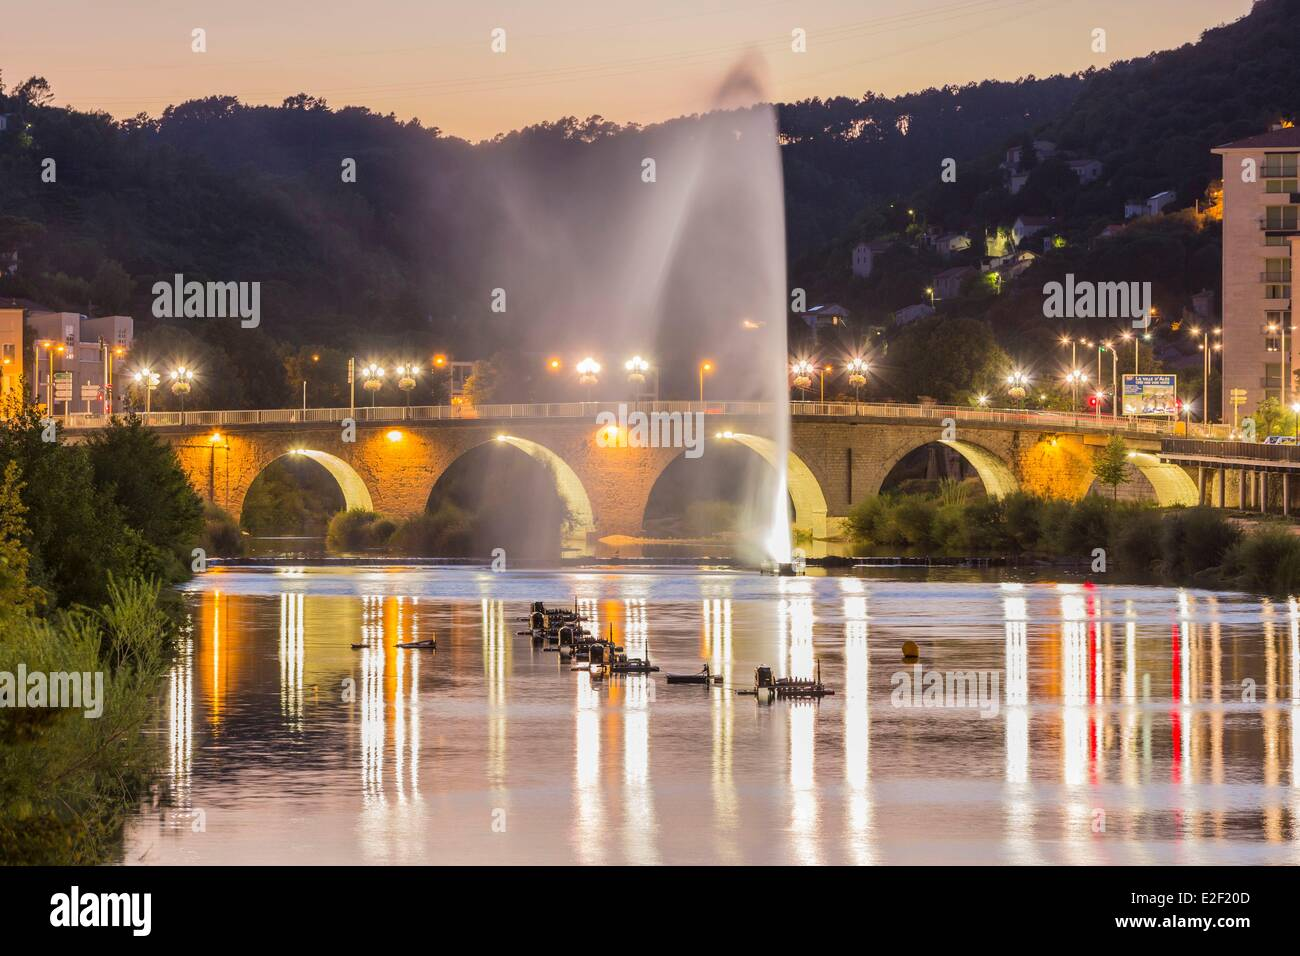 France, Gard, Ales, water jet on the Gardon and preparations of fireworks - Stock Image